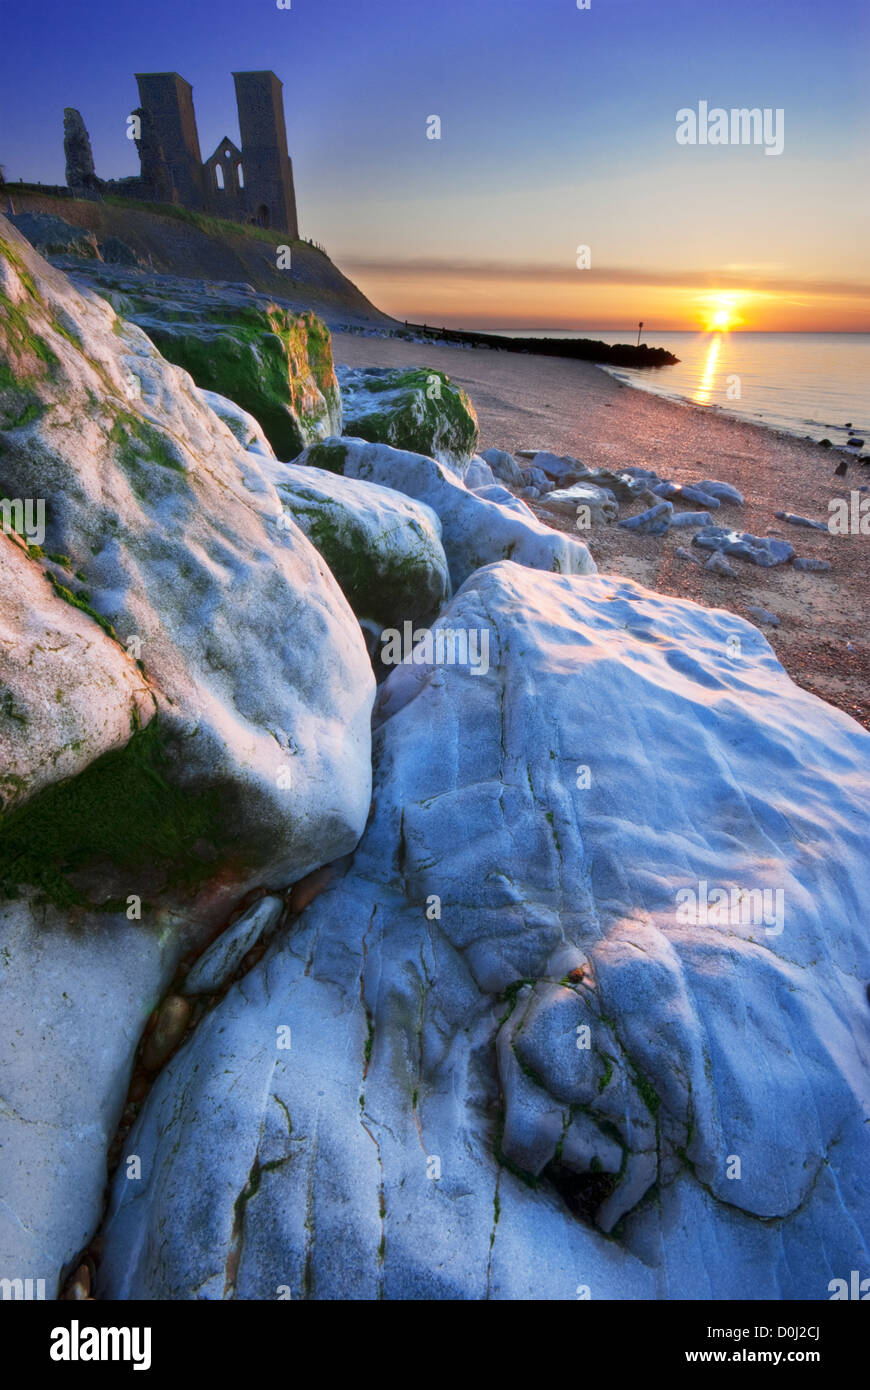 Sunset at the Reculver Towers in Kent. Stock Photo